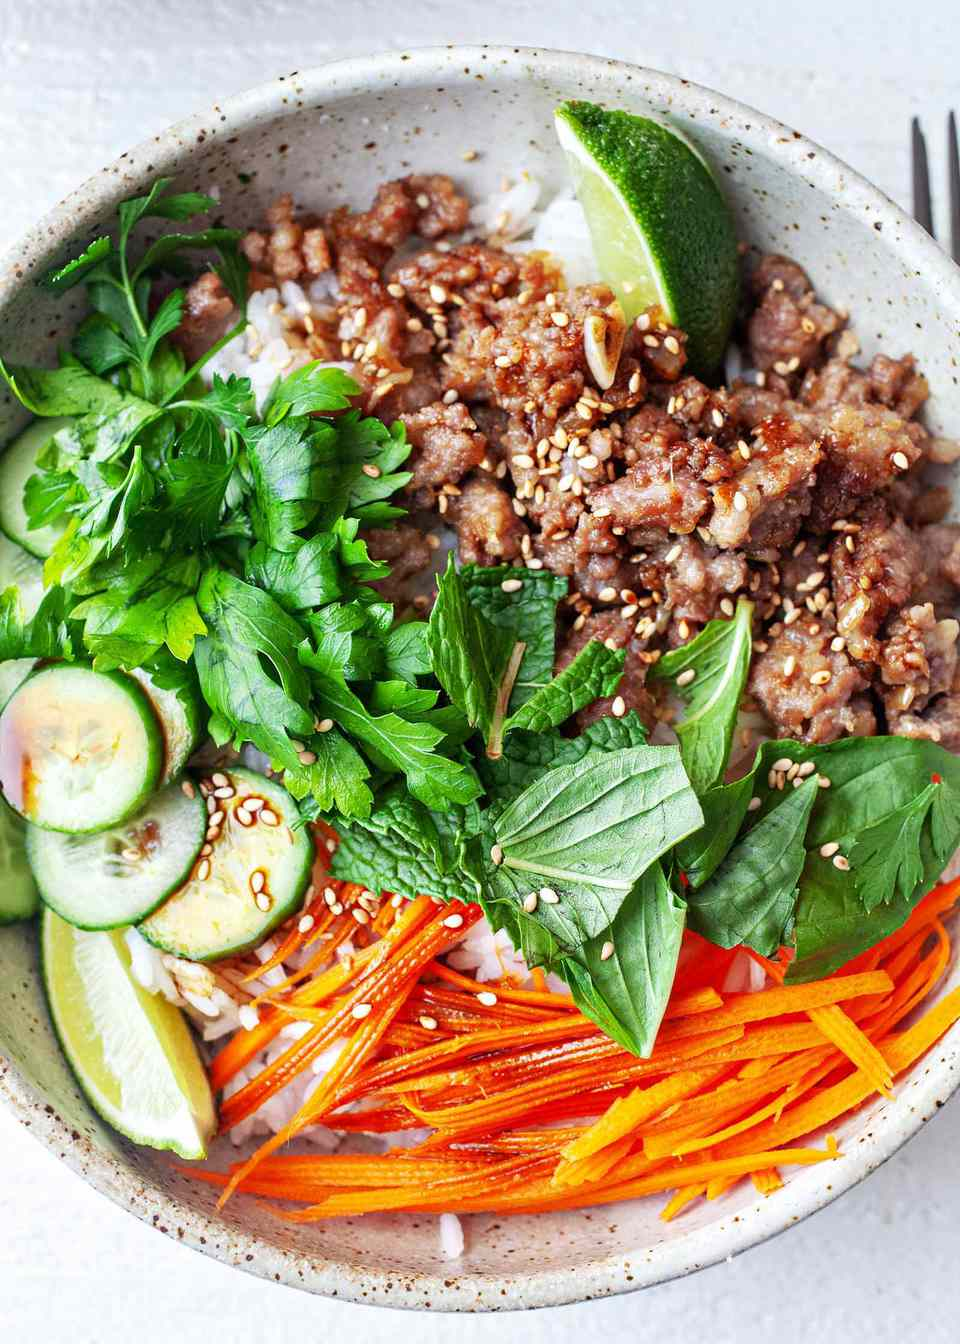 Easy Rice Bowl Recipe with Pork - ceramic bowl with cooked pork herbs carrots and cucumbers